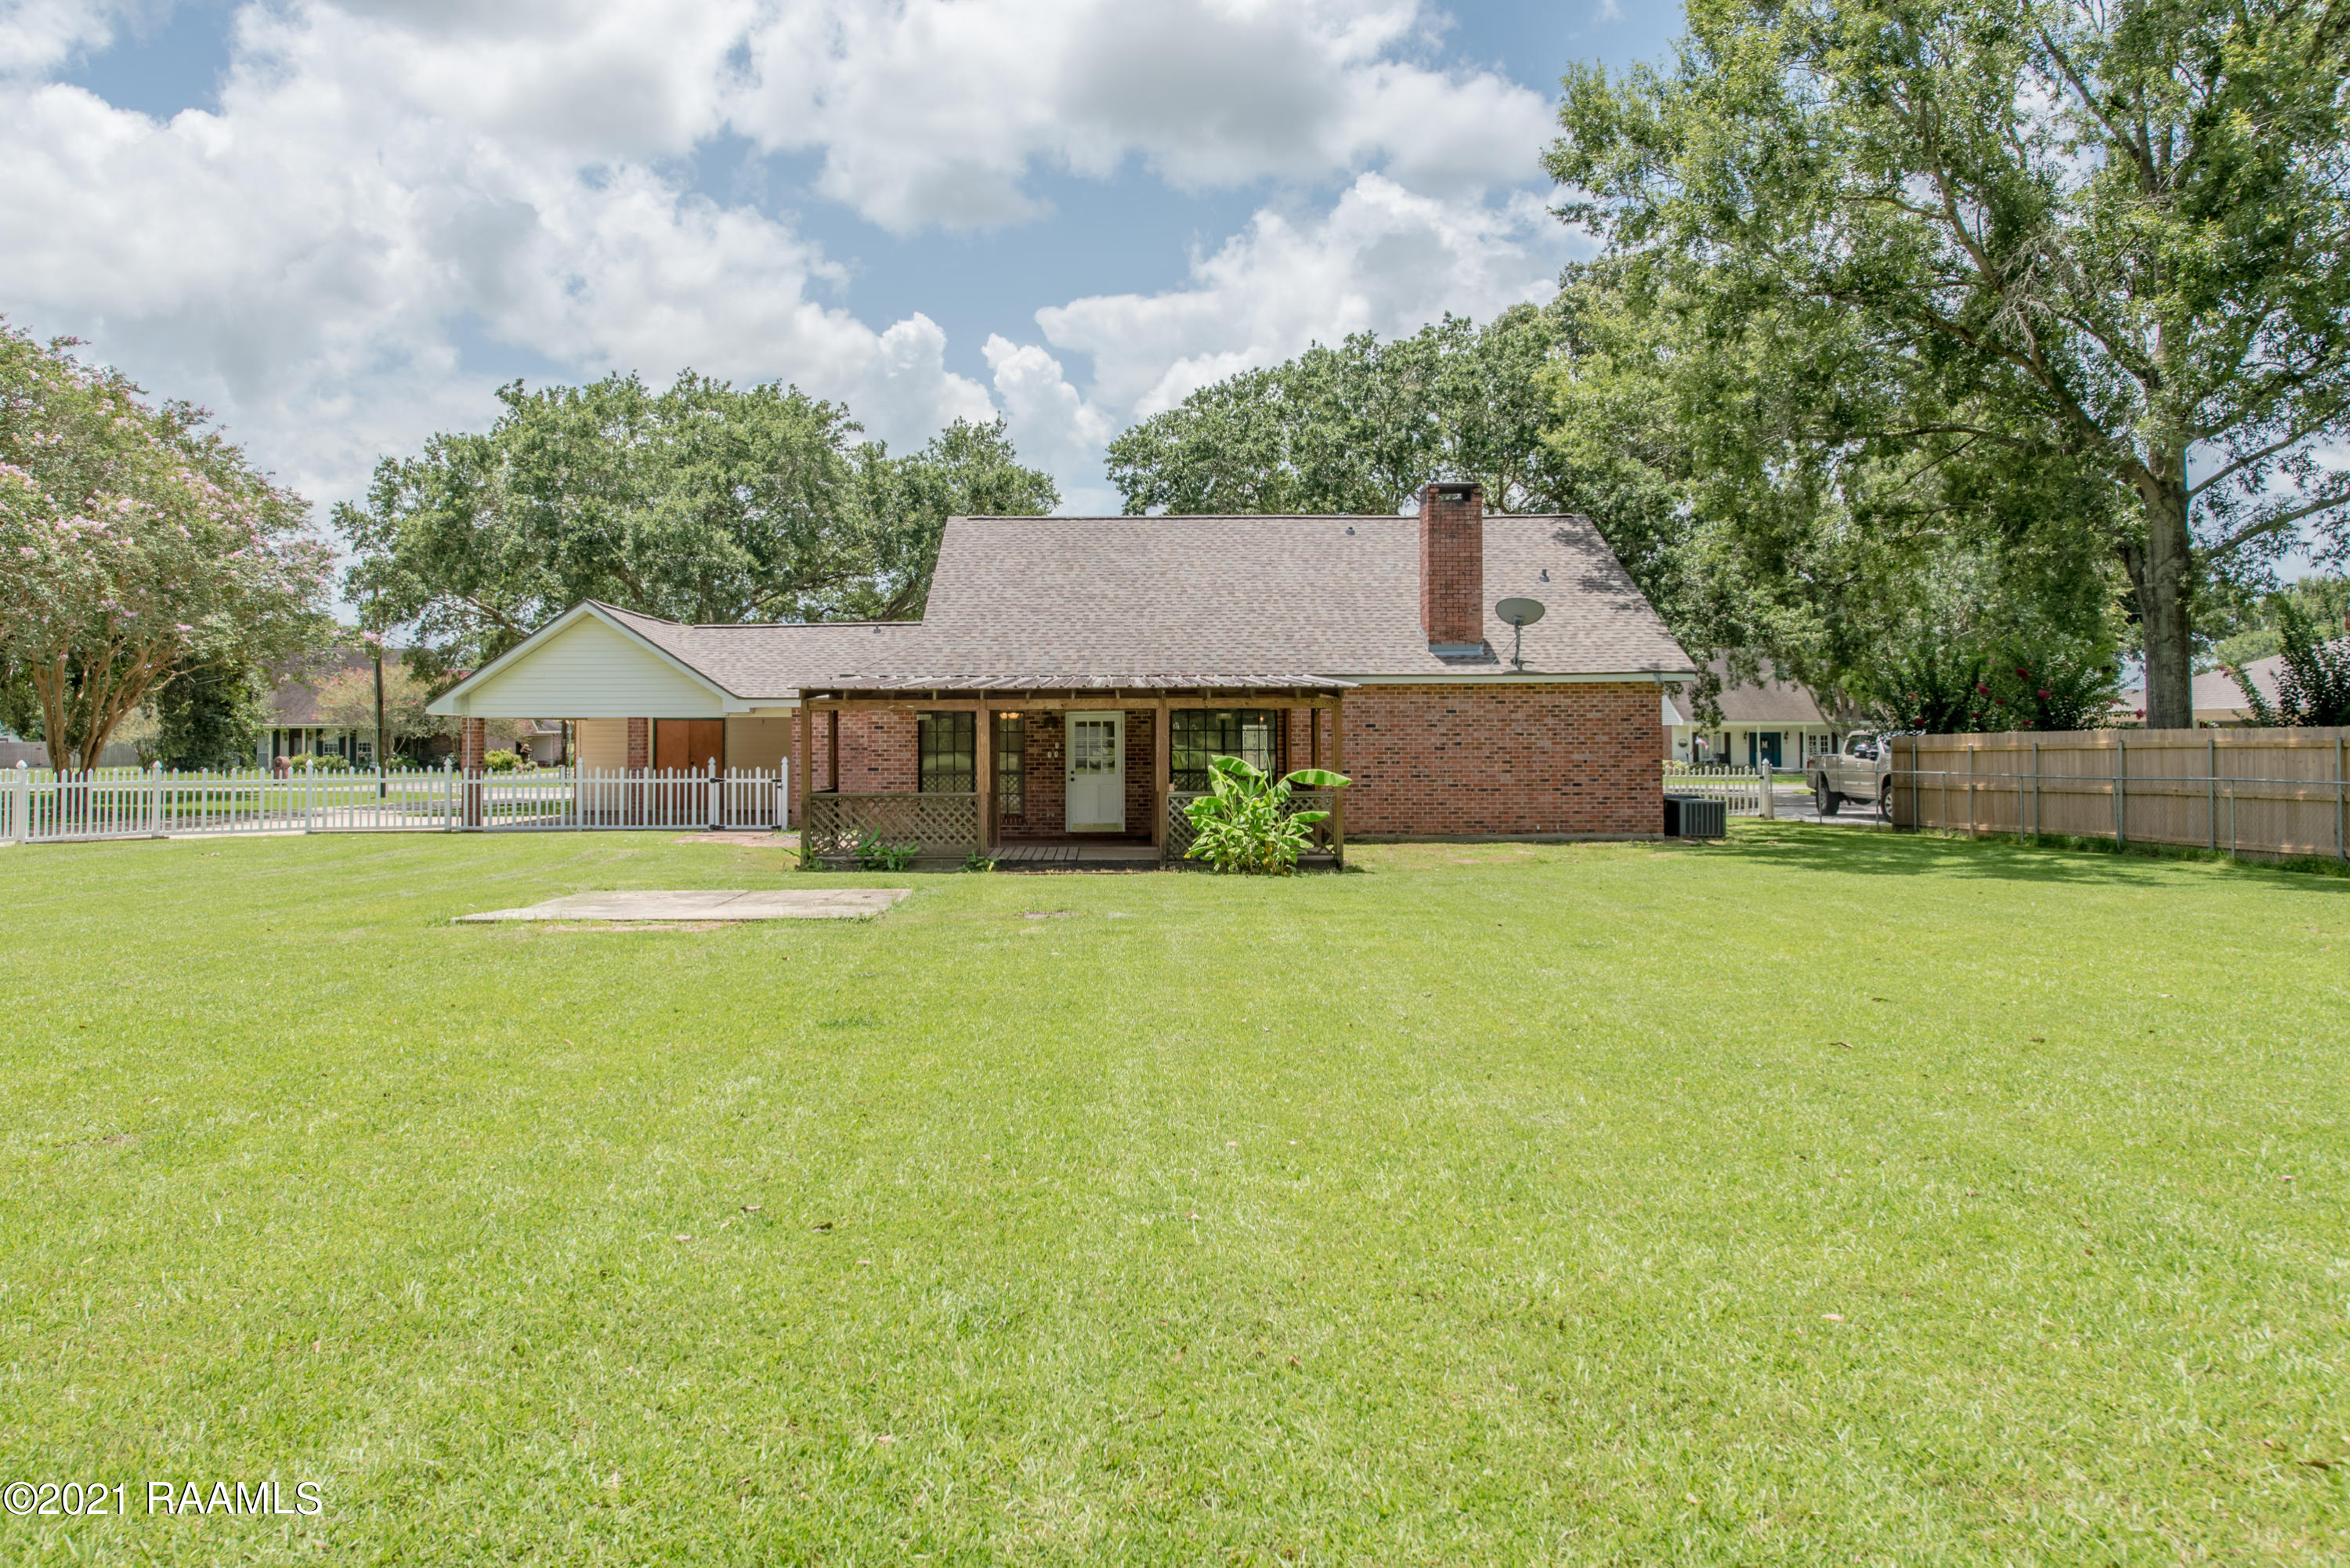 116 Countryview Drive, Youngsville, LA 70592 Photo #8